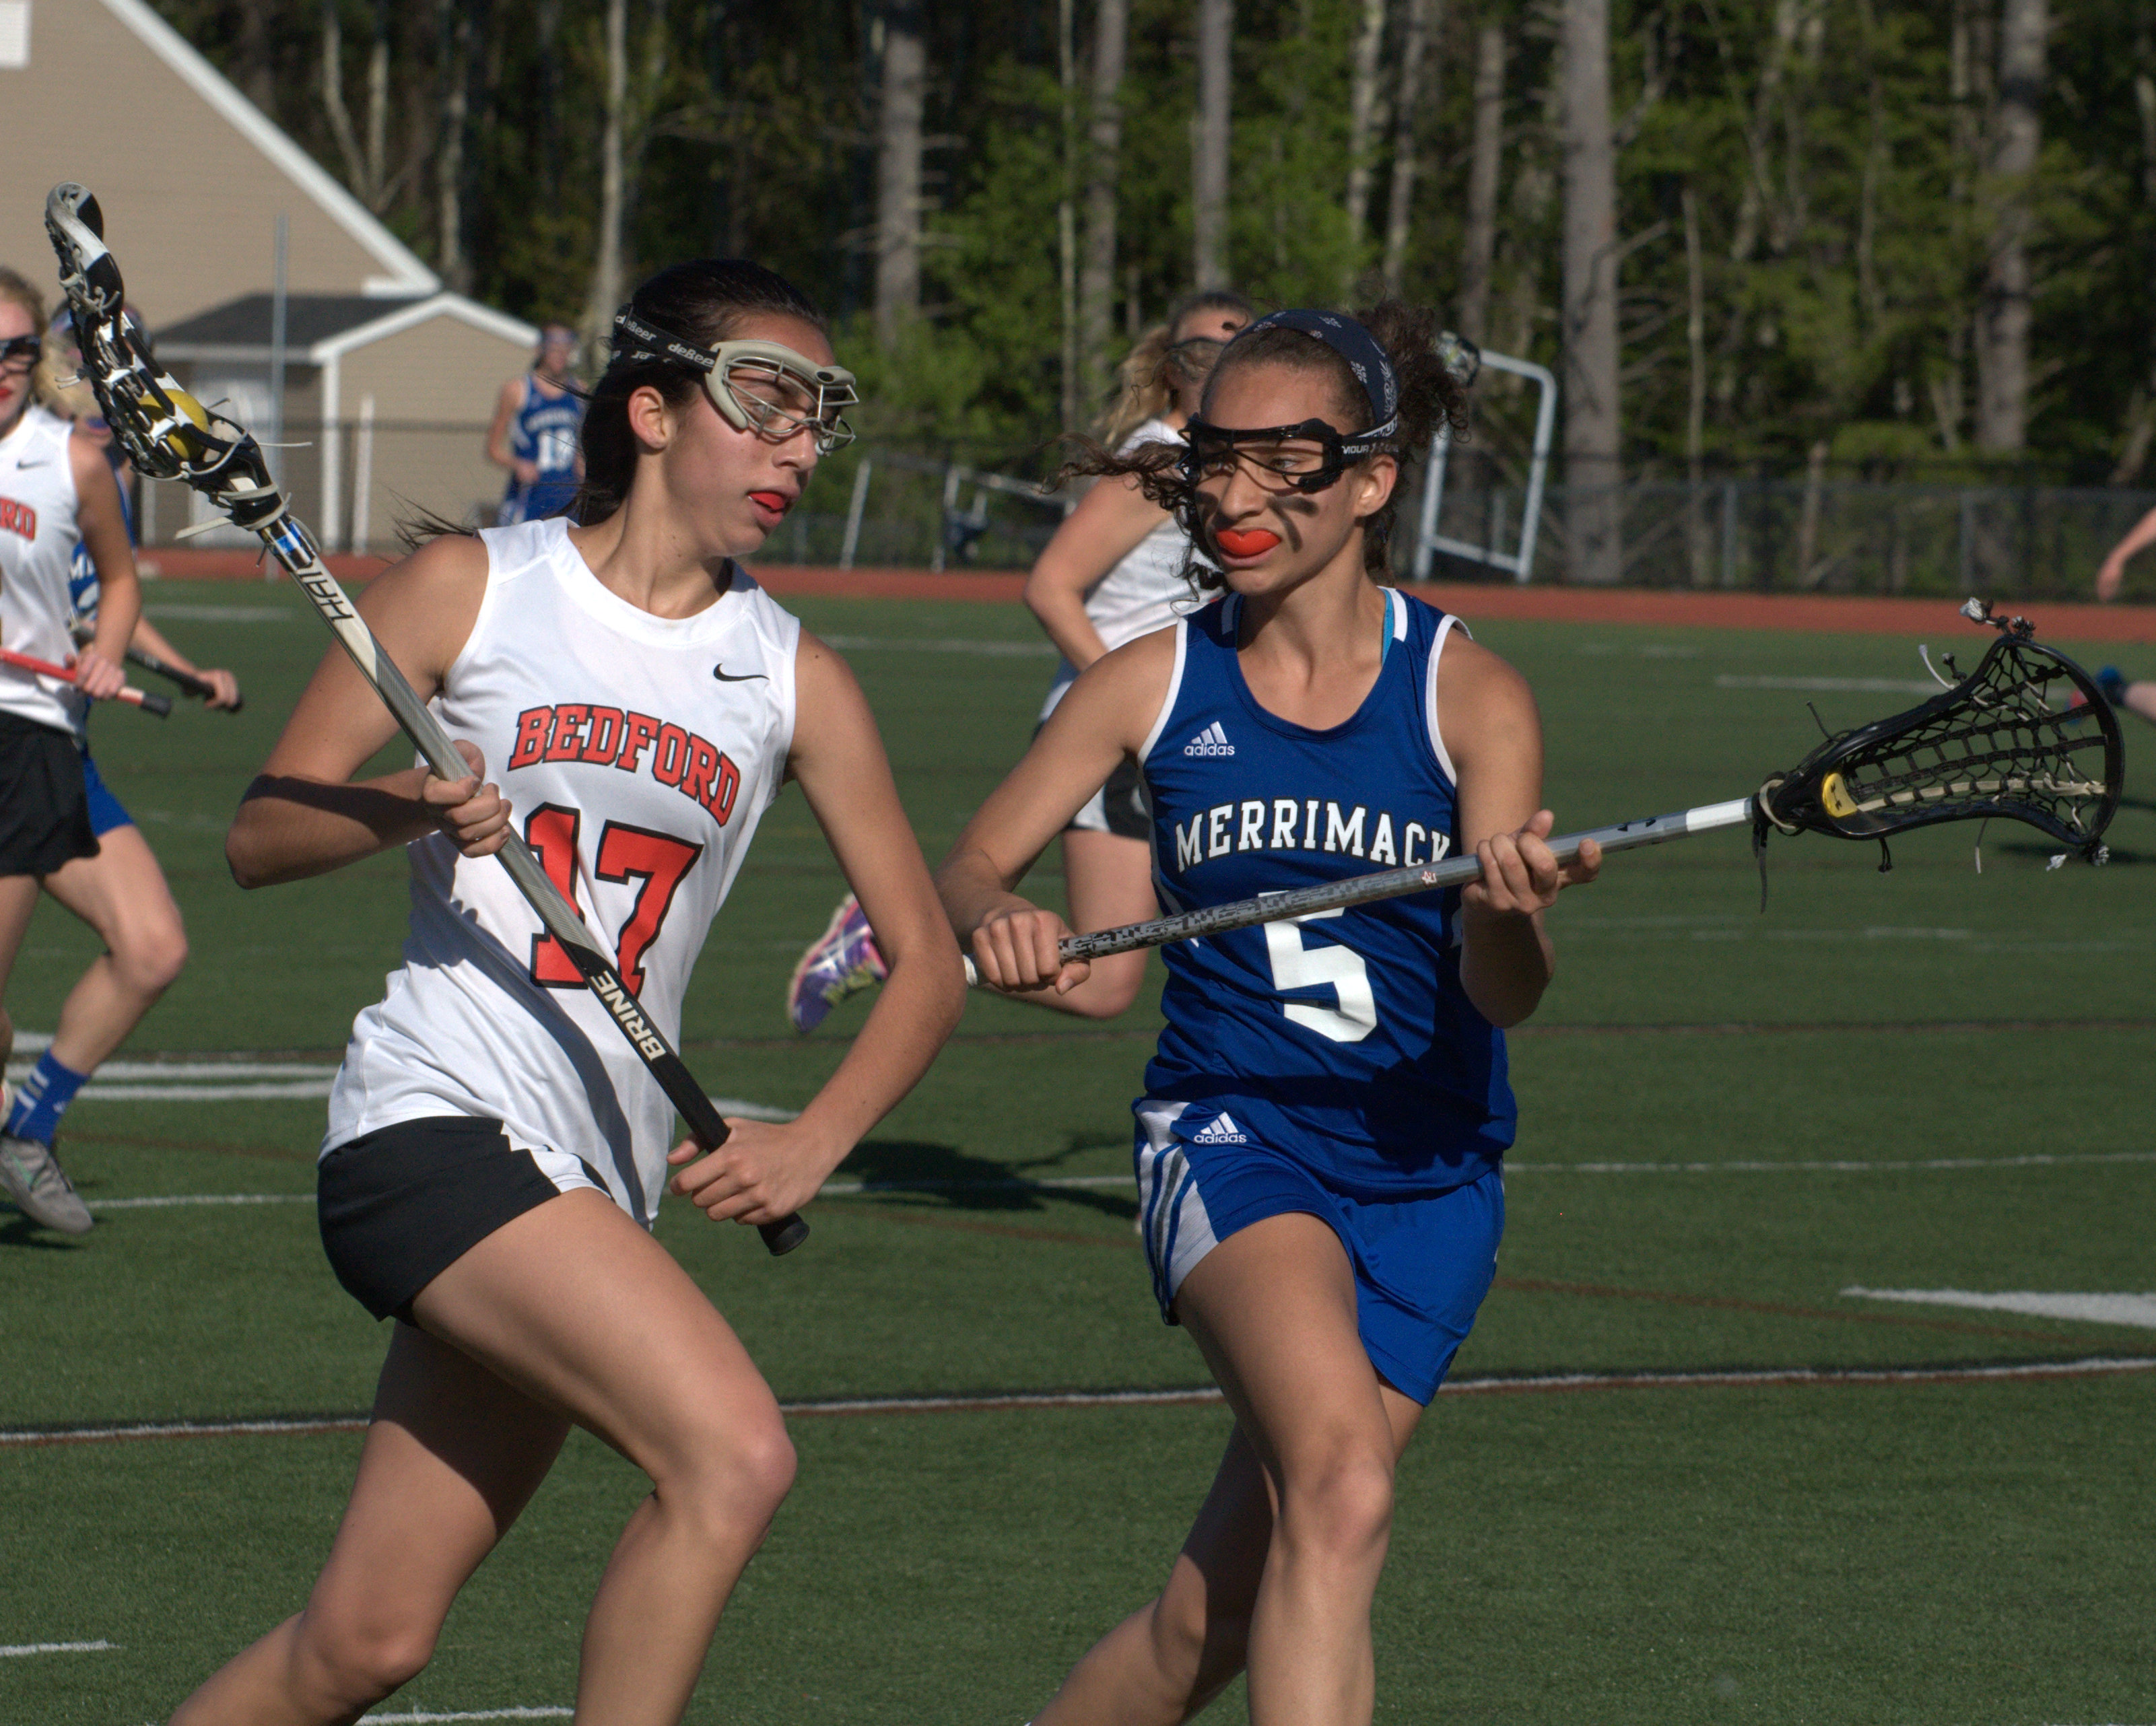 Bedford was the only new team in the rankings this week, while Merrimack dropped out.